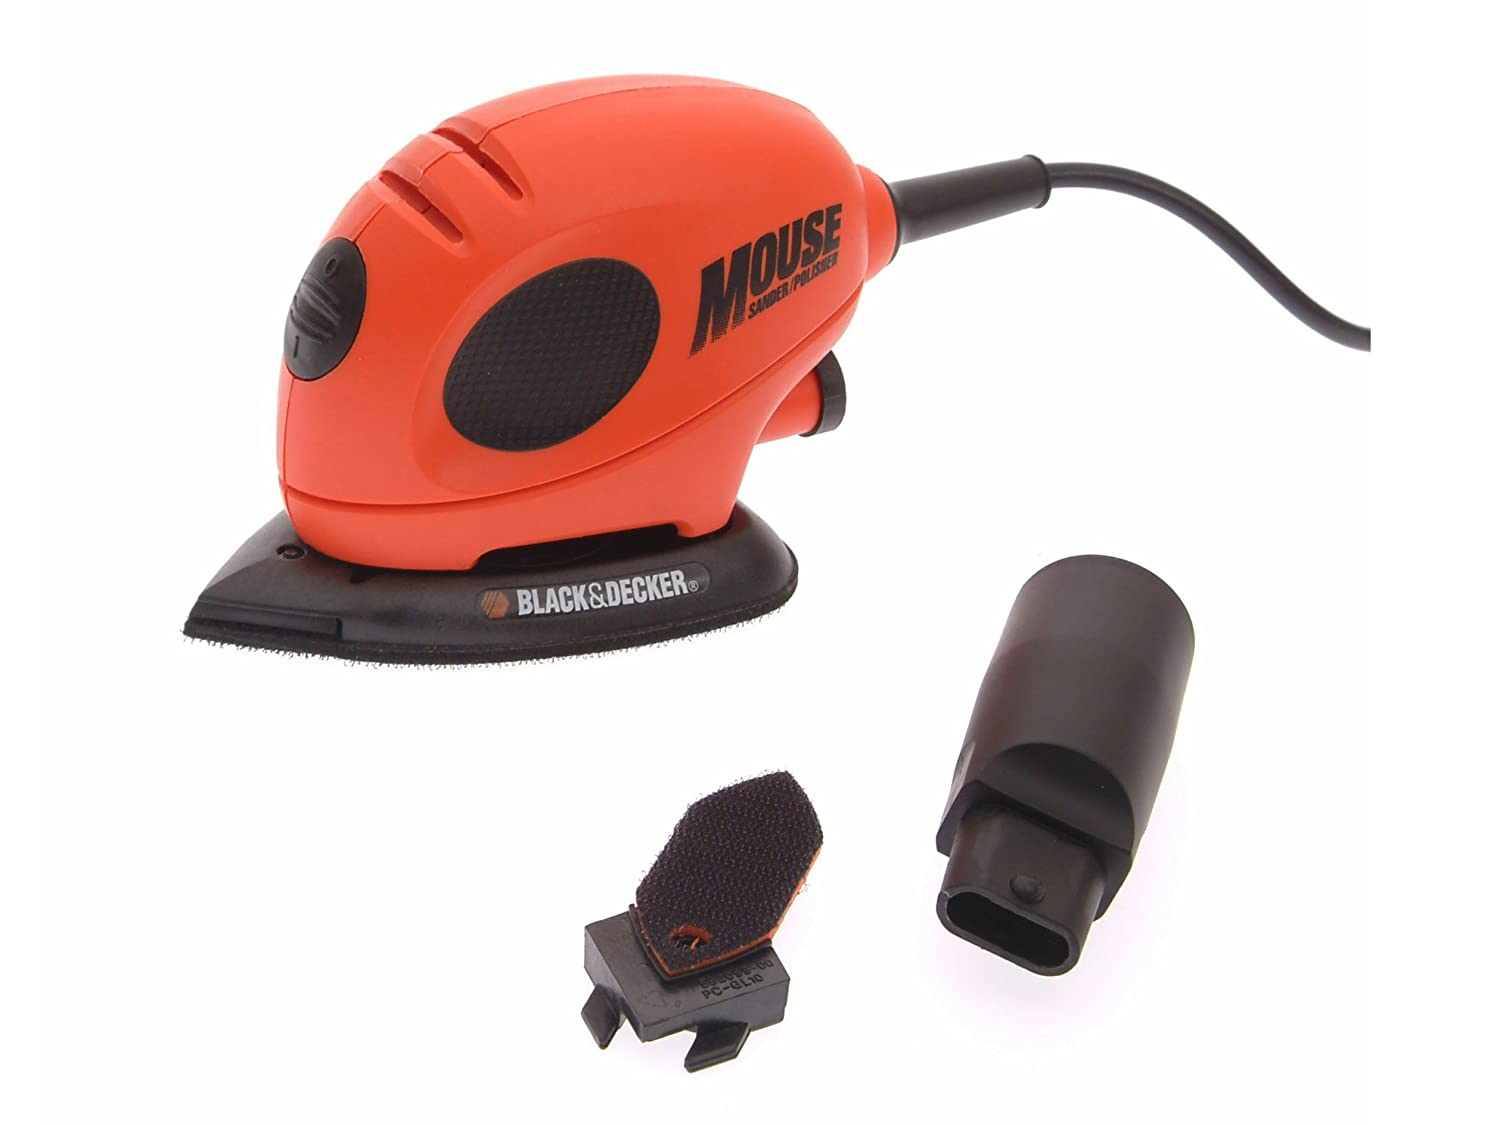 BLACK+DECKER KA161 Mouse Sander (Old Version) Toolbank (First Order Account) B/DKA161